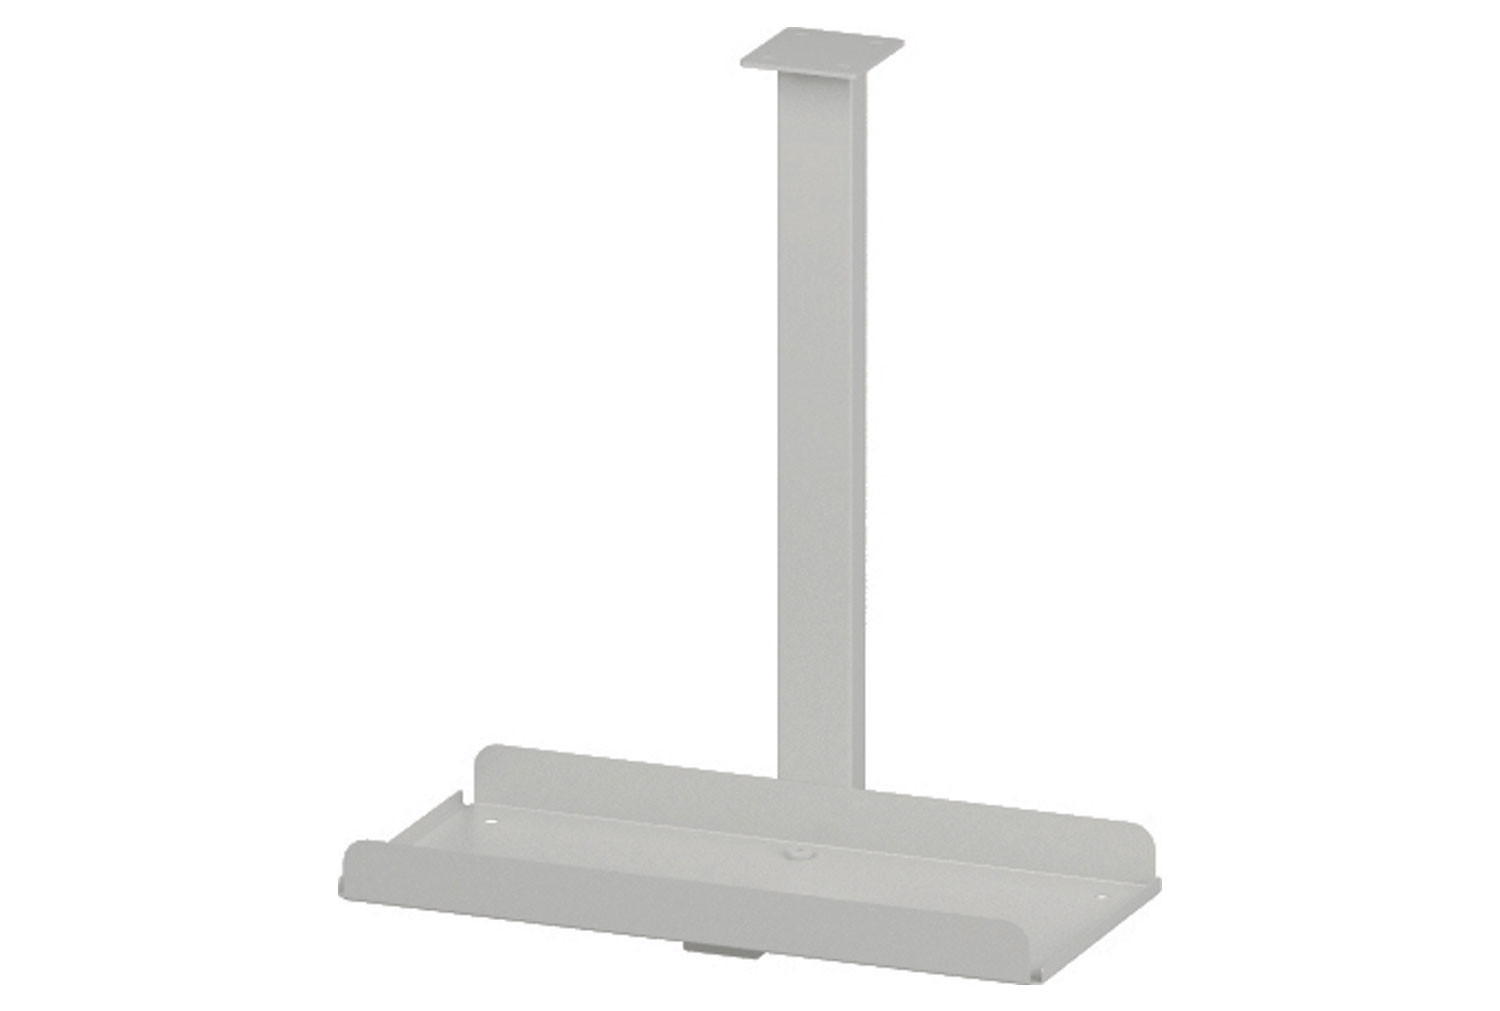 Pamola Silver Desk Mounted PC Holder